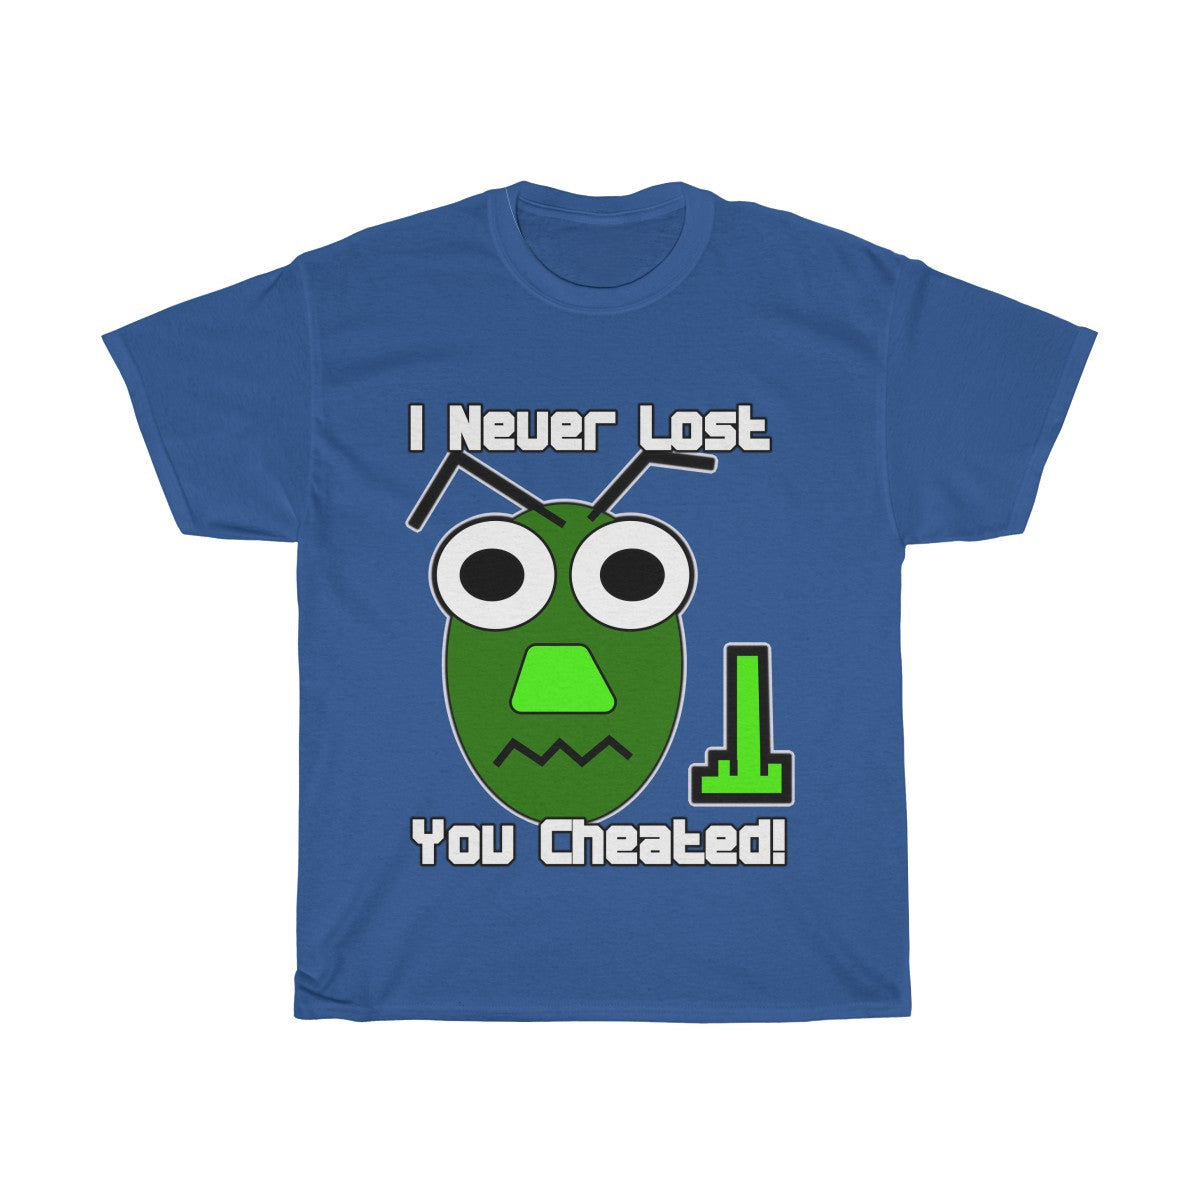 I Never Lost You Cheated Cotton Tee